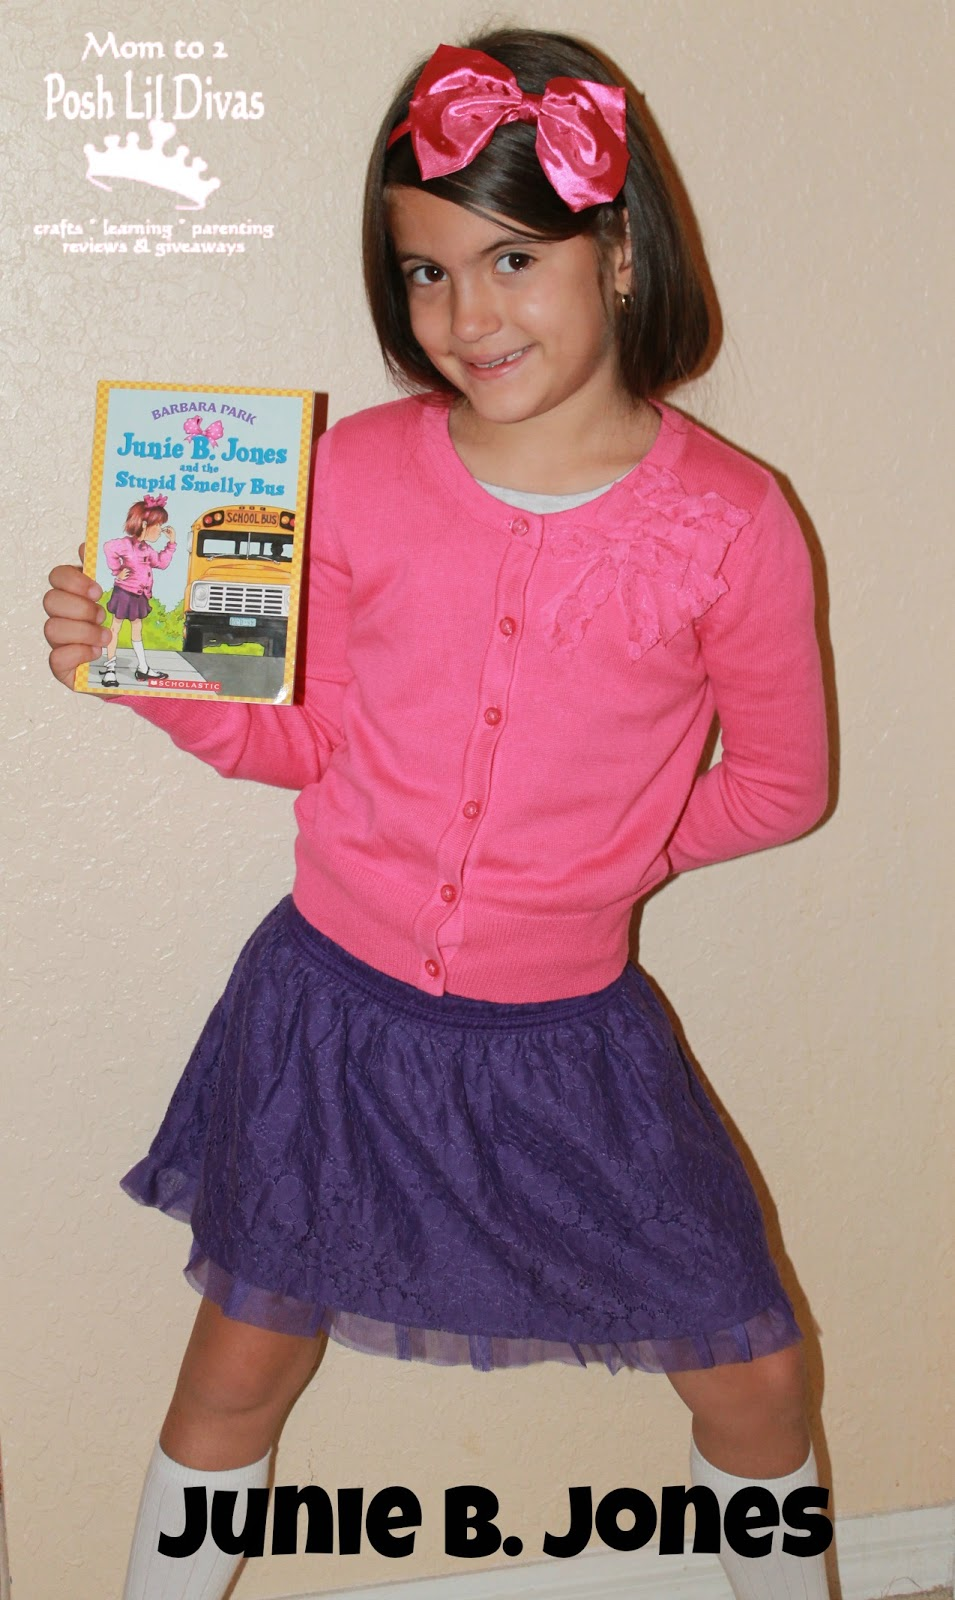 Junie B_ Jones Costume http://www.momto2poshlildivas.com/2012_10_01_archive.html